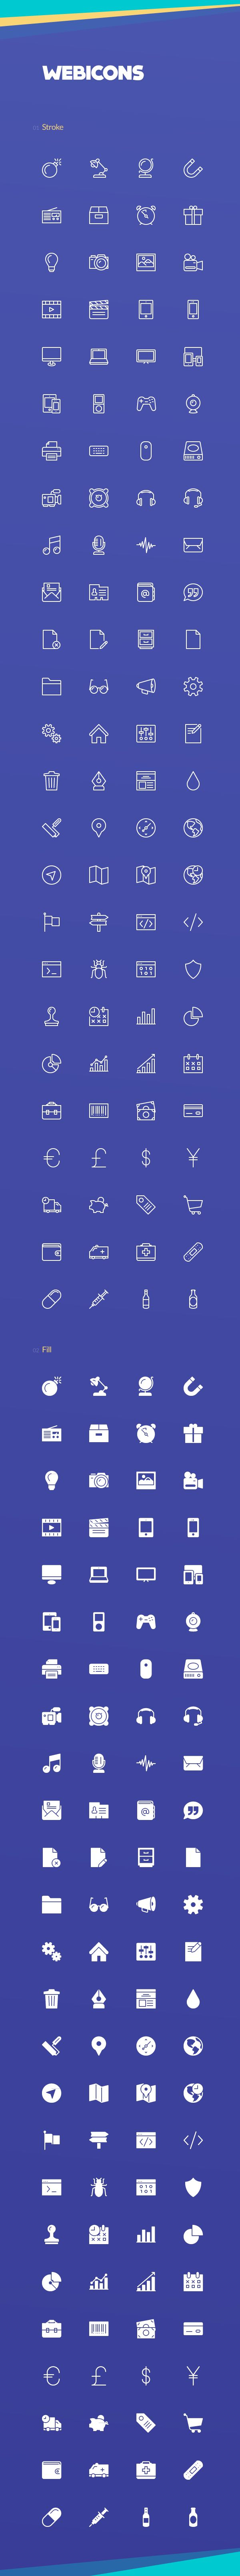 Today's freebie is a collection of 100 free icons designed by Vlad Cristea that will match perfectly into your...